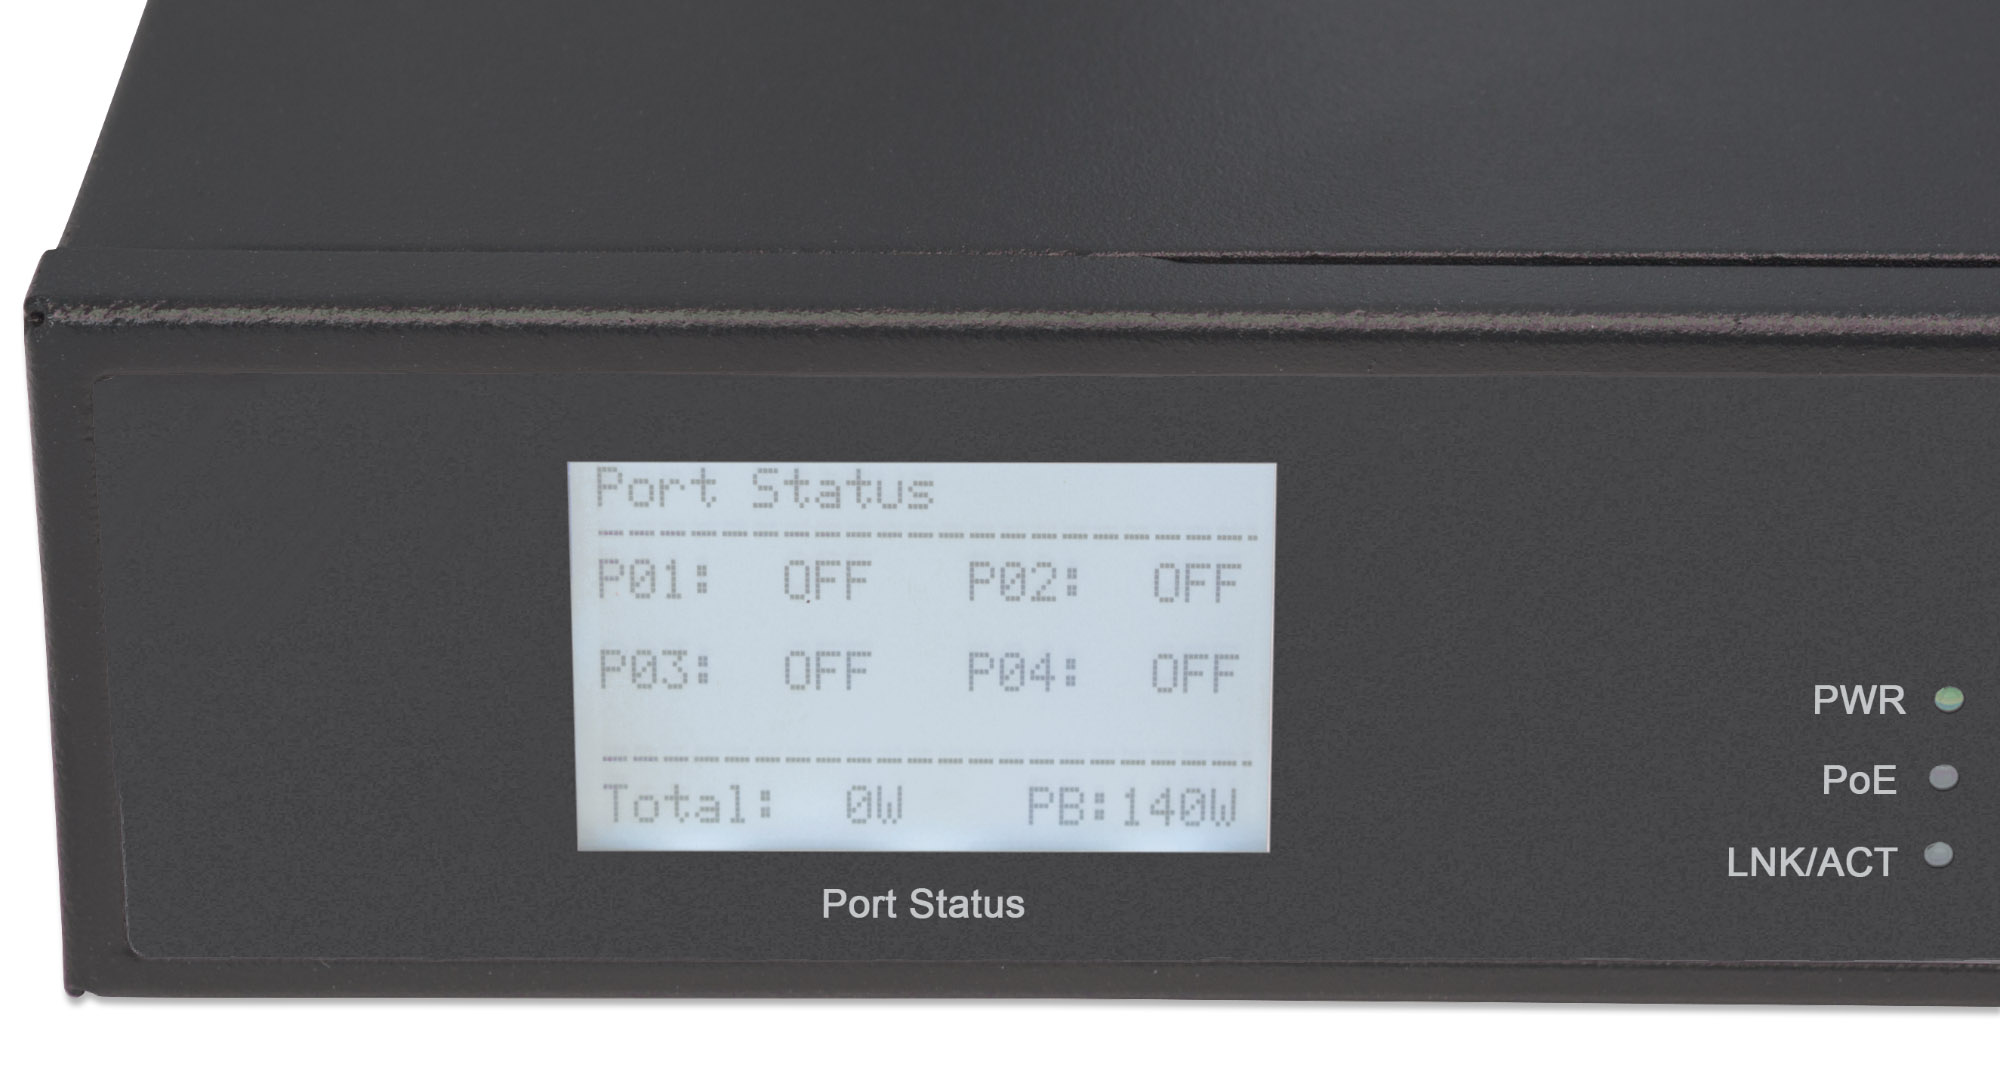 8-Port Gigabit Ethernet Switch with 4 Ultra PoE Ports and LCD Screen